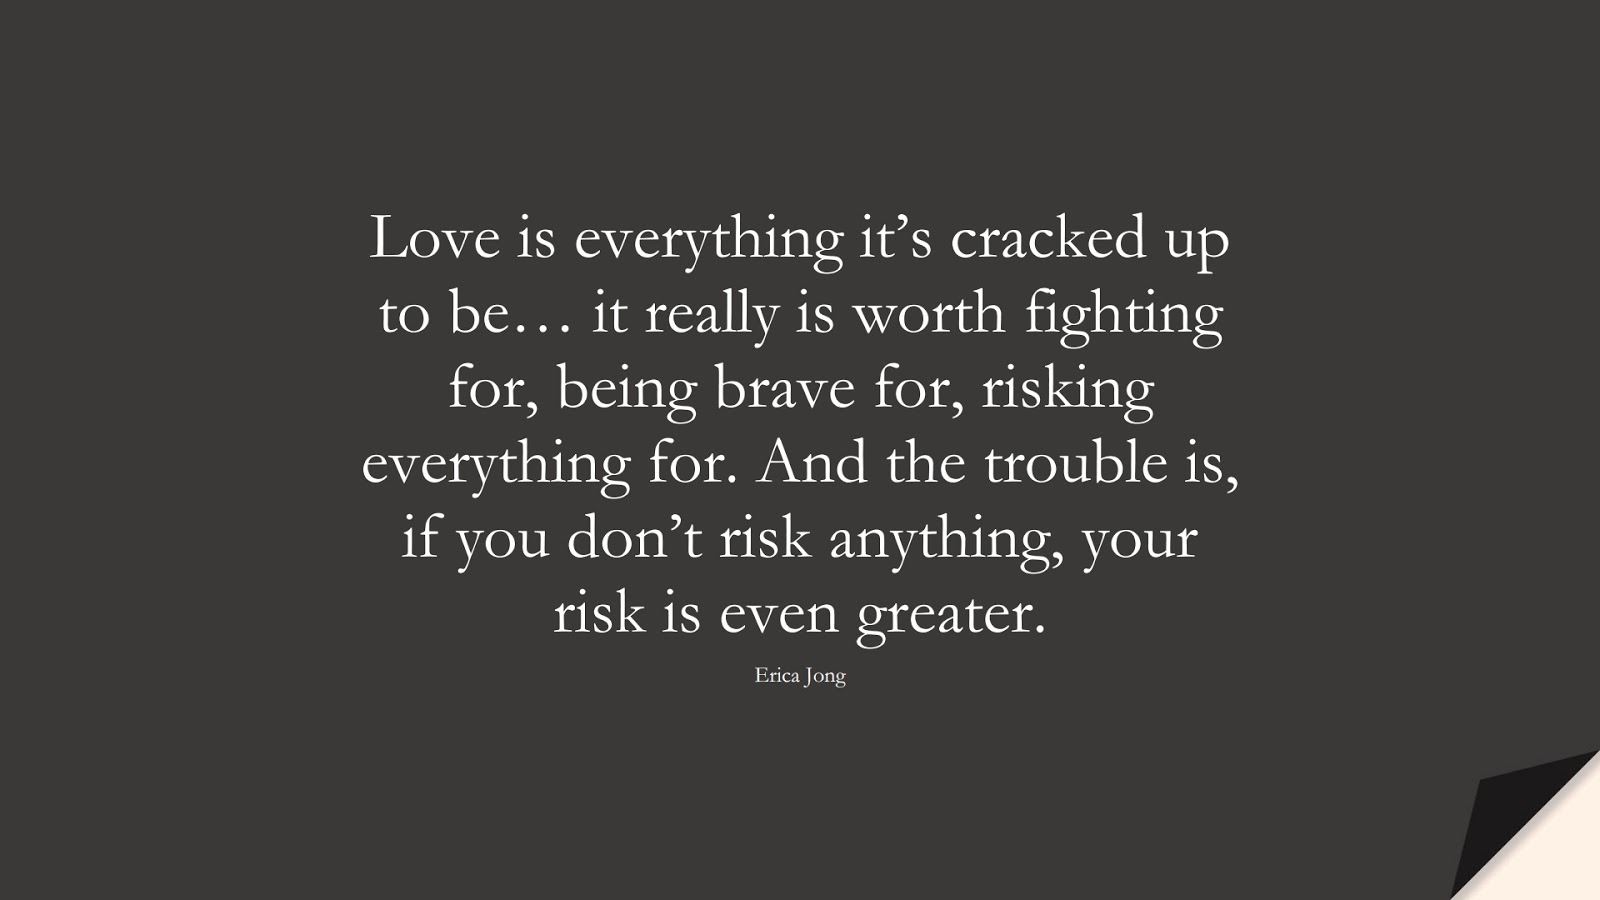 Love is everything it's cracked up to be… it really is worth fighting for, being brave for, risking everything for. And the trouble is, if you don't risk anything, your risk is even greater. (Erica Jong);  #FearQuotes